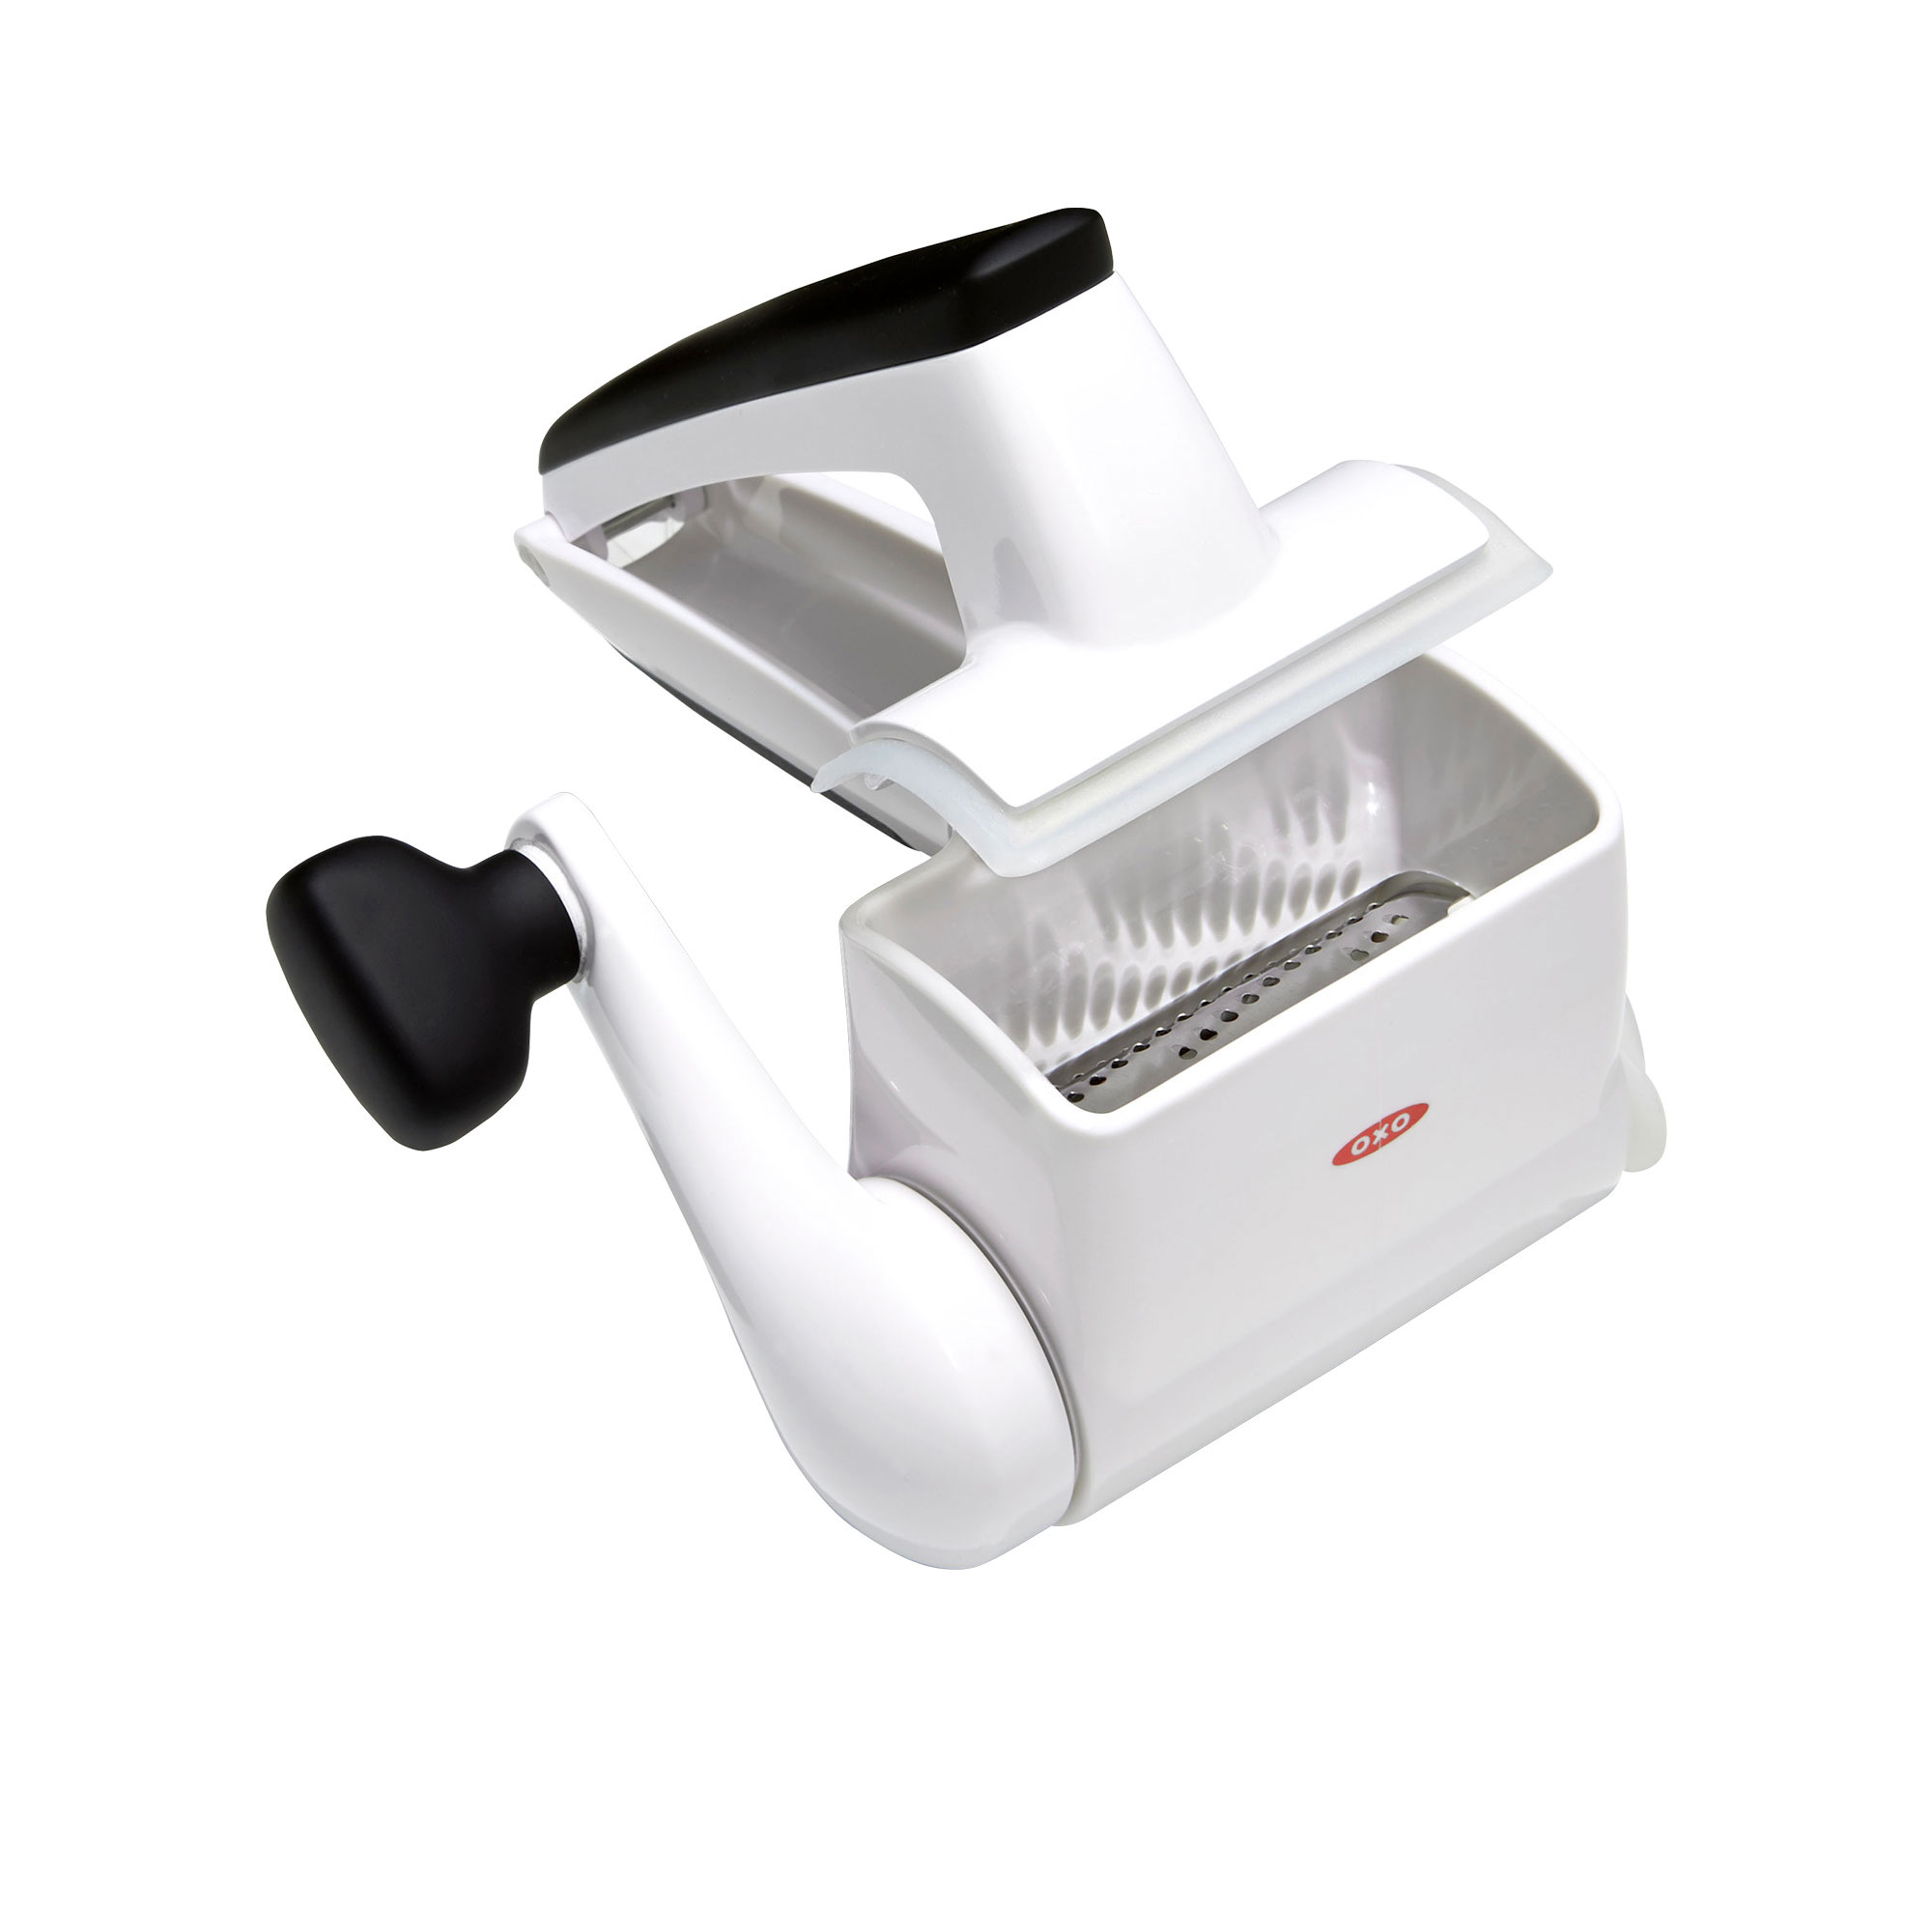 Oxo Good Grips Seal & Store Rotary Grater White